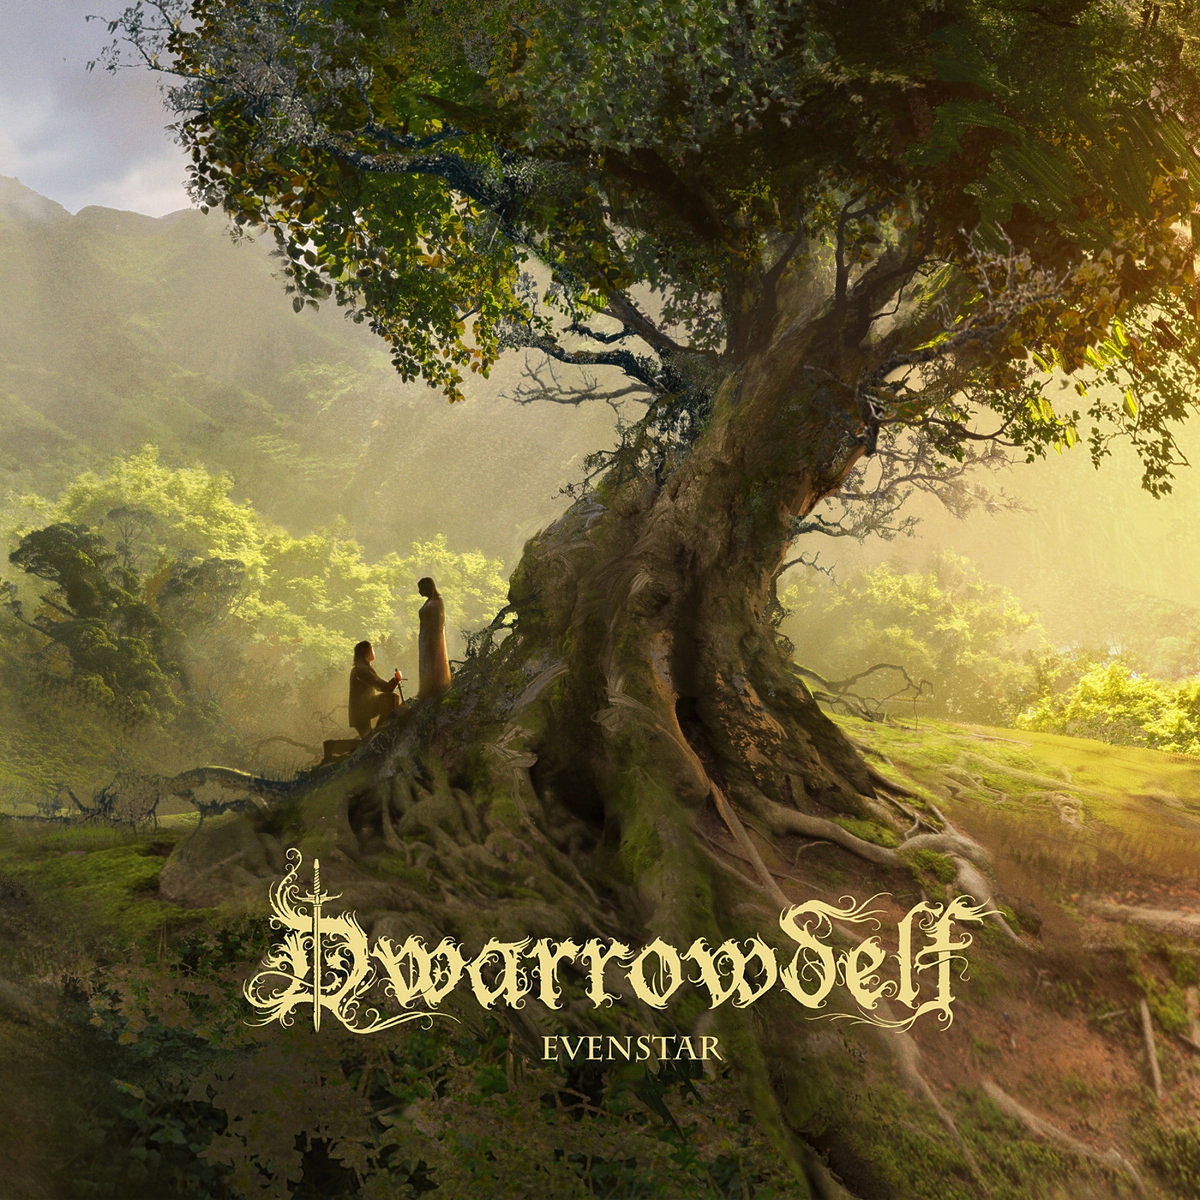 Evenstar Dwarrowdelf Artwork Cover Art